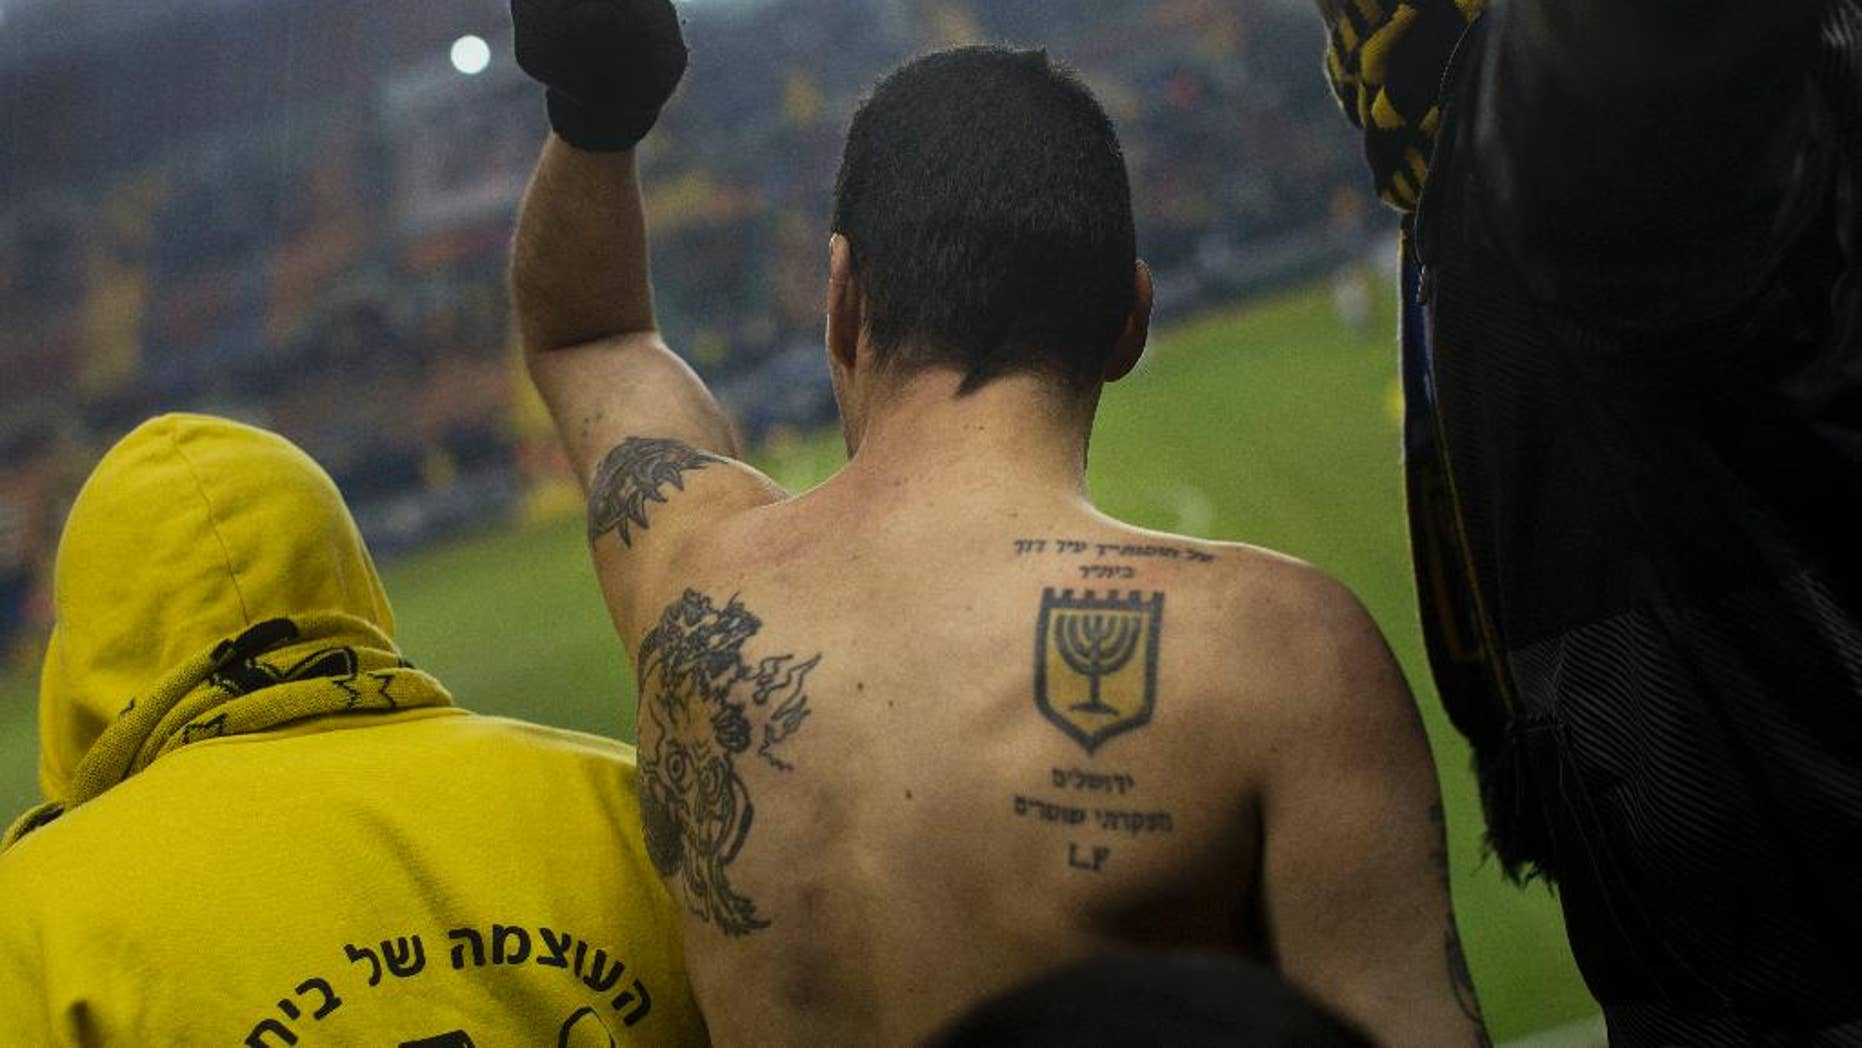 """In this Tuesday, Jan. 29, 2013 file photo, Beitar Jerusalem F.C. soccer supporters watch a State Cup soccer match against Maccabi Umm al-Fahm F.C. at the Teddy Stadium in Jerusalem. Israeli police say they have arrested dozens of members of an extremist soccer fans' group. Police spokeswoman Luba Samri said on Tuesday, July 26, 2016 that 56 suspected members of the """"La Familia"""" group of Beitar Jerusalem fans were arrested in an overnight raid. (AP Photo/Bernat Armangue, File)"""